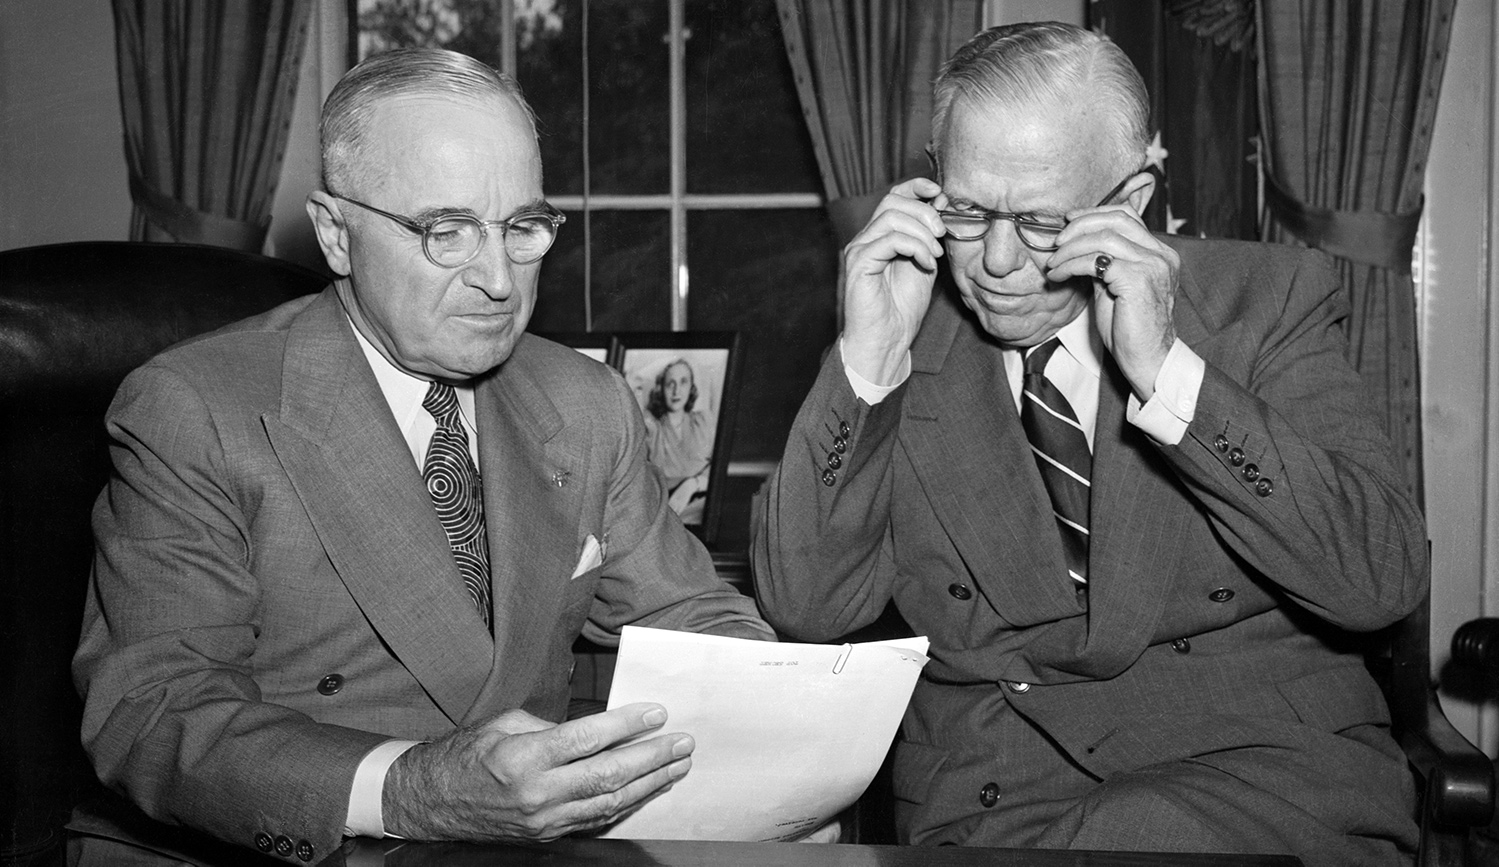 How Harry Truman Crossed His Own State Department to Recognize Israel in 1948